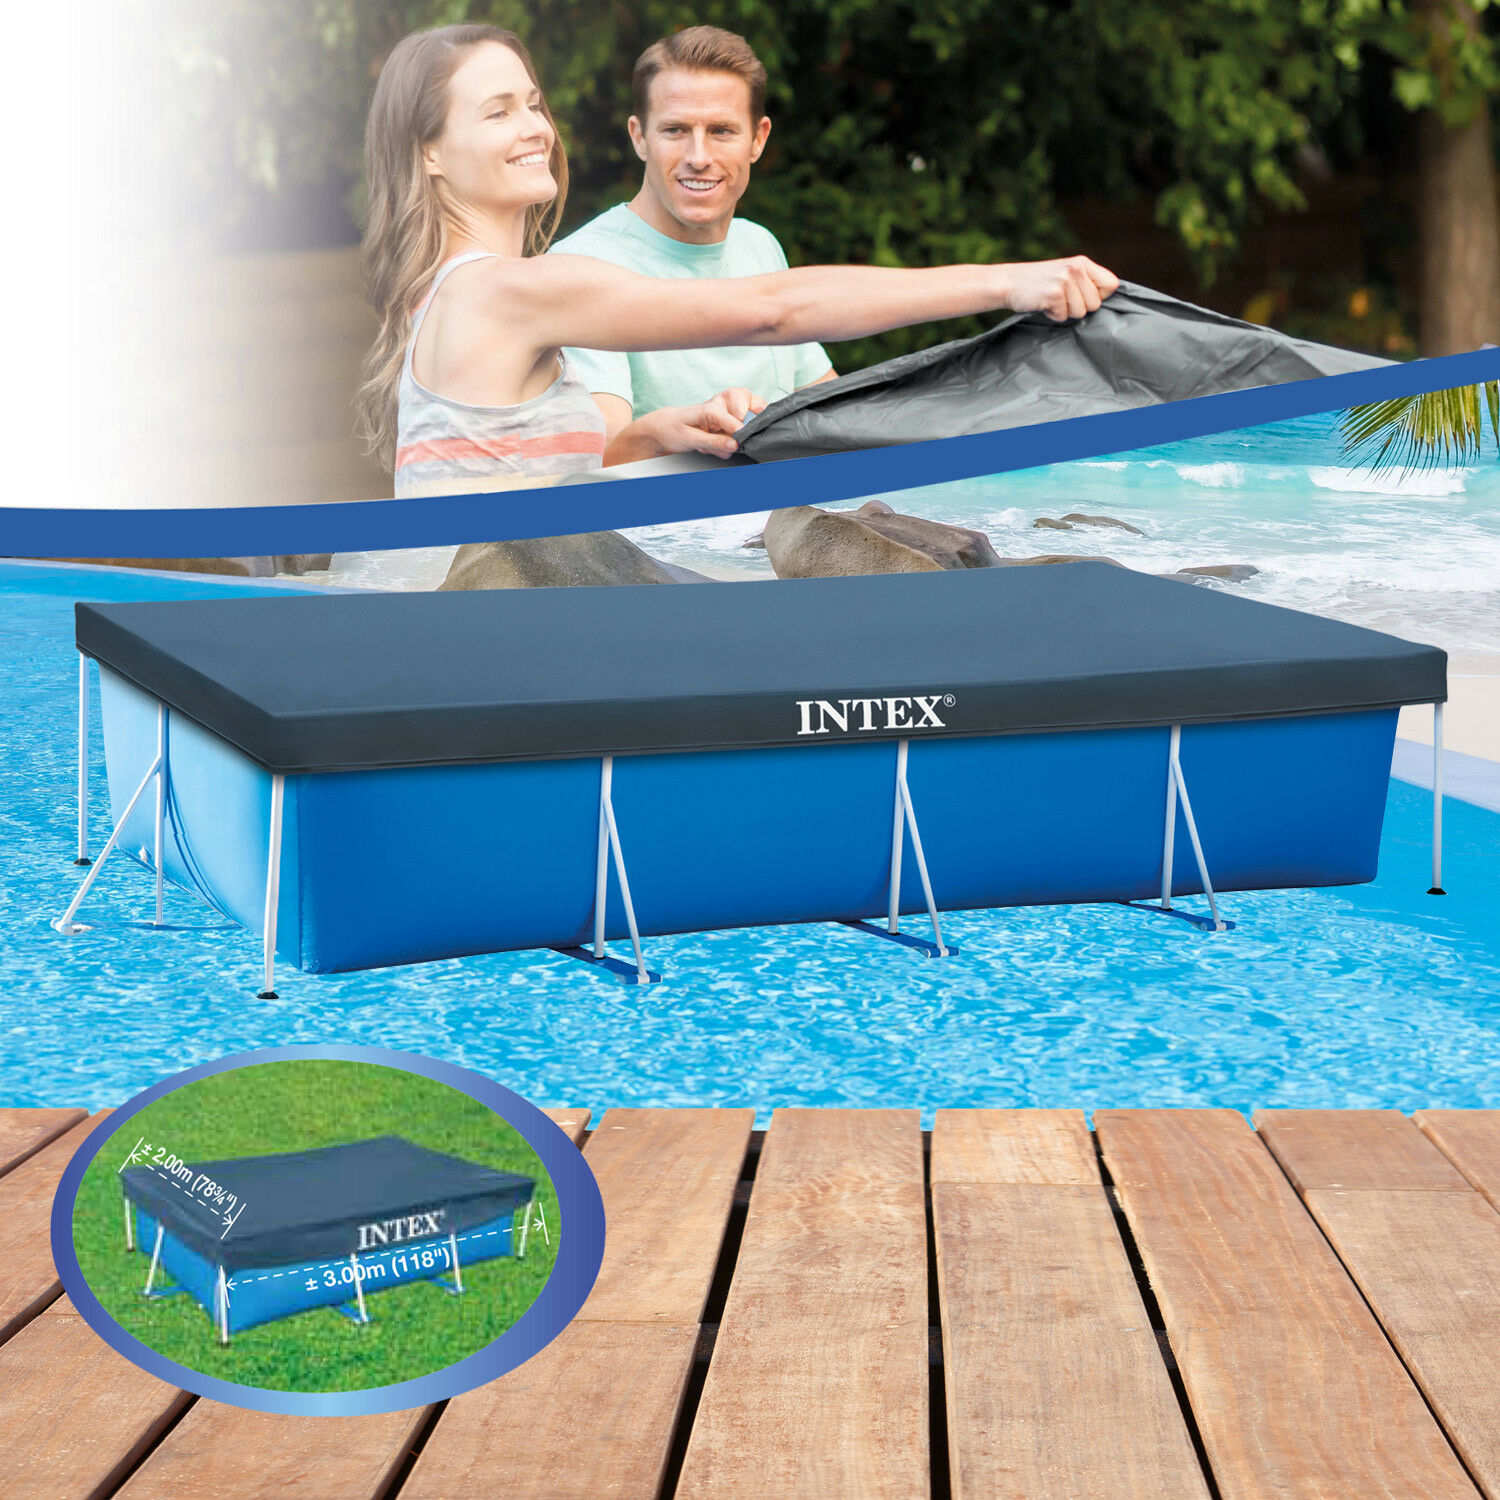 intex 300x200cm abdeckplane poolplane poolabdeckung plane pool abdeckung frame eur 13 90. Black Bedroom Furniture Sets. Home Design Ideas